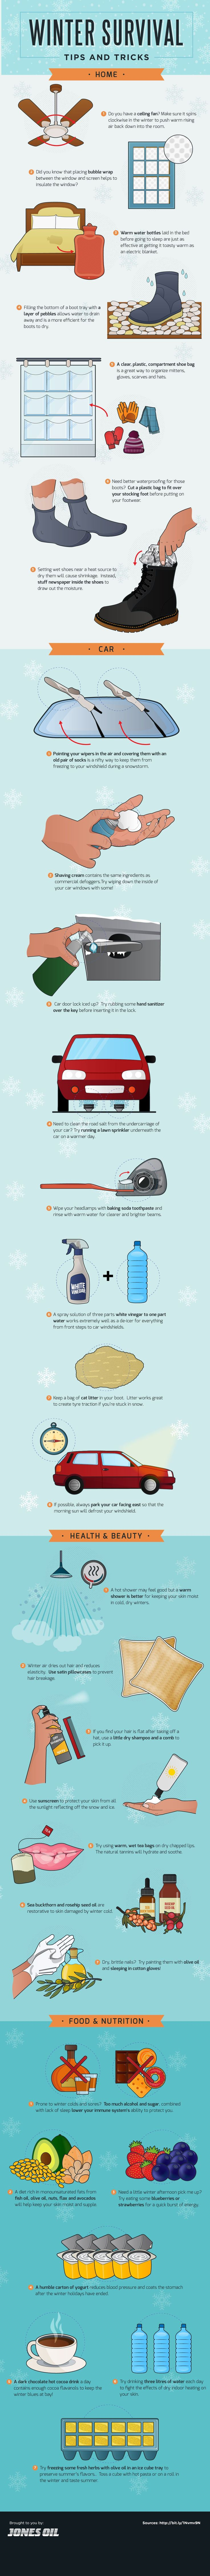 Winter Survival Tips and Tricks #Infographic #Winter #Survival